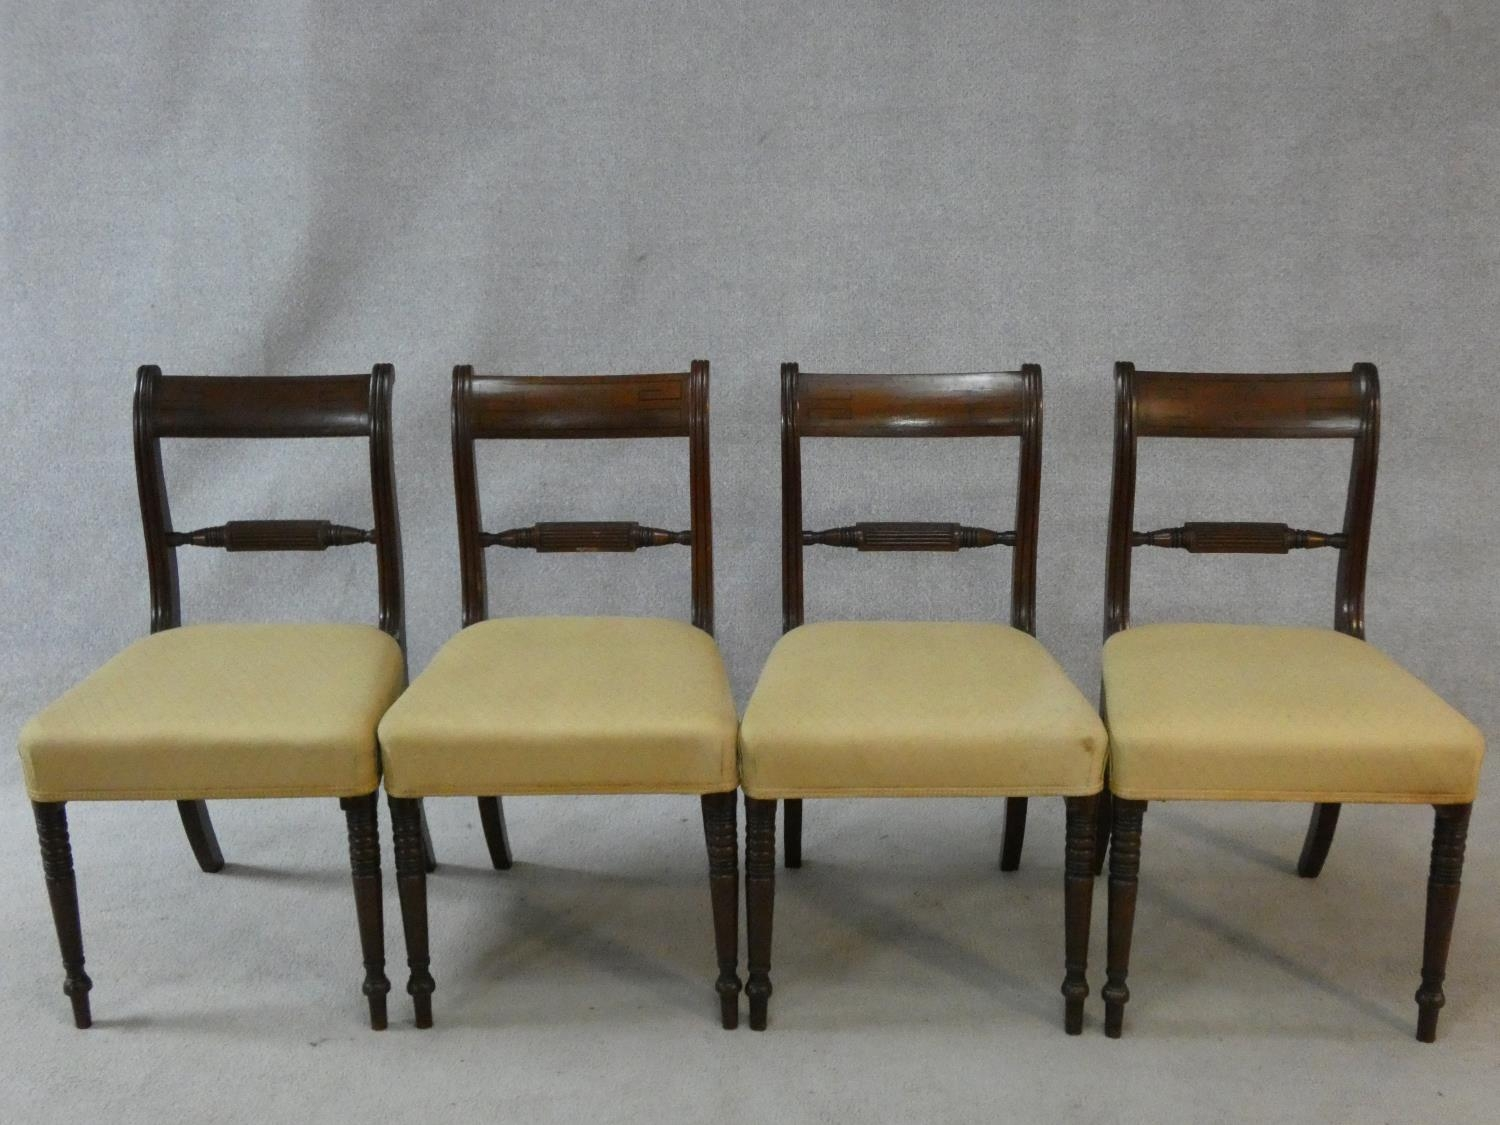 A set of four late Georgian mahogany bar back dining chairs with ebony Greek key pattern inlay above